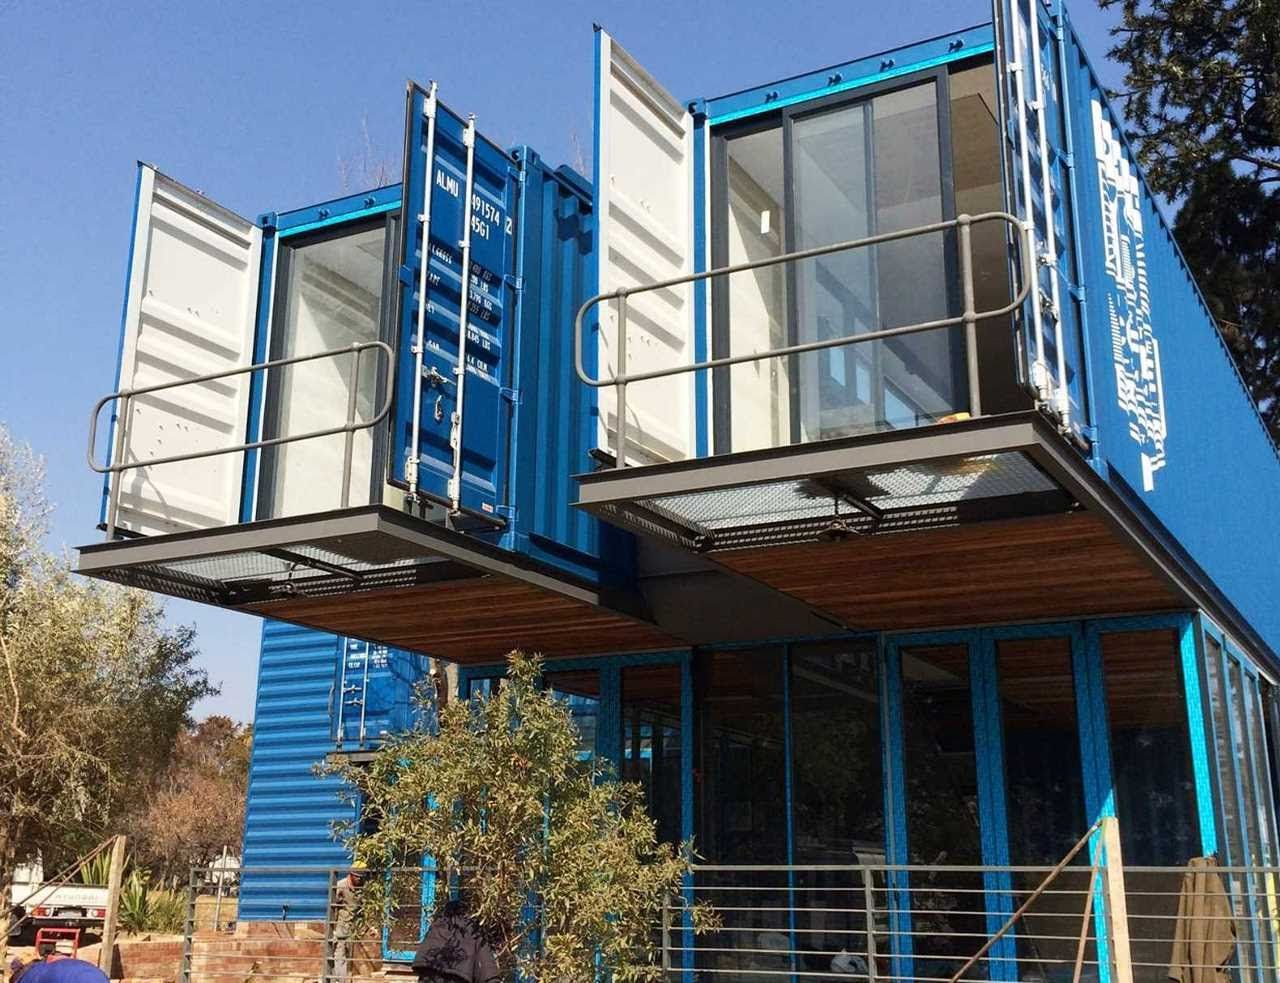 Shipping container homes youtube on pinterest shipping containers - Made From Stacked And Cantilevered Shipping Containers The Foghound Interactive Coffee Company In Johannesburg Designed By Earthworld Architects